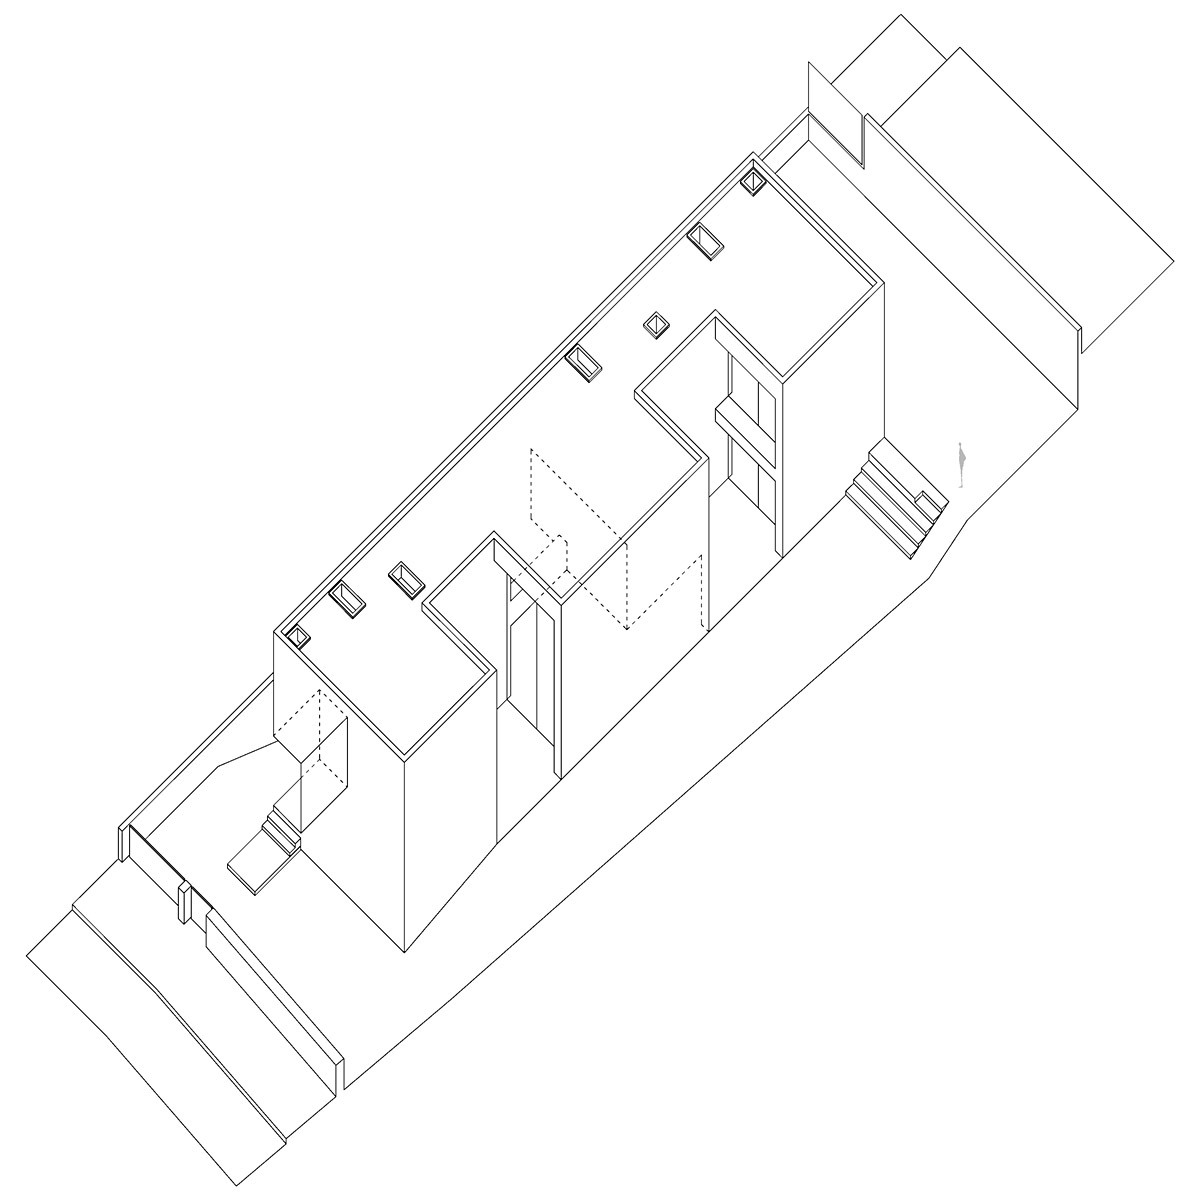 Axonometric (Image: Phyd Arquitecture)